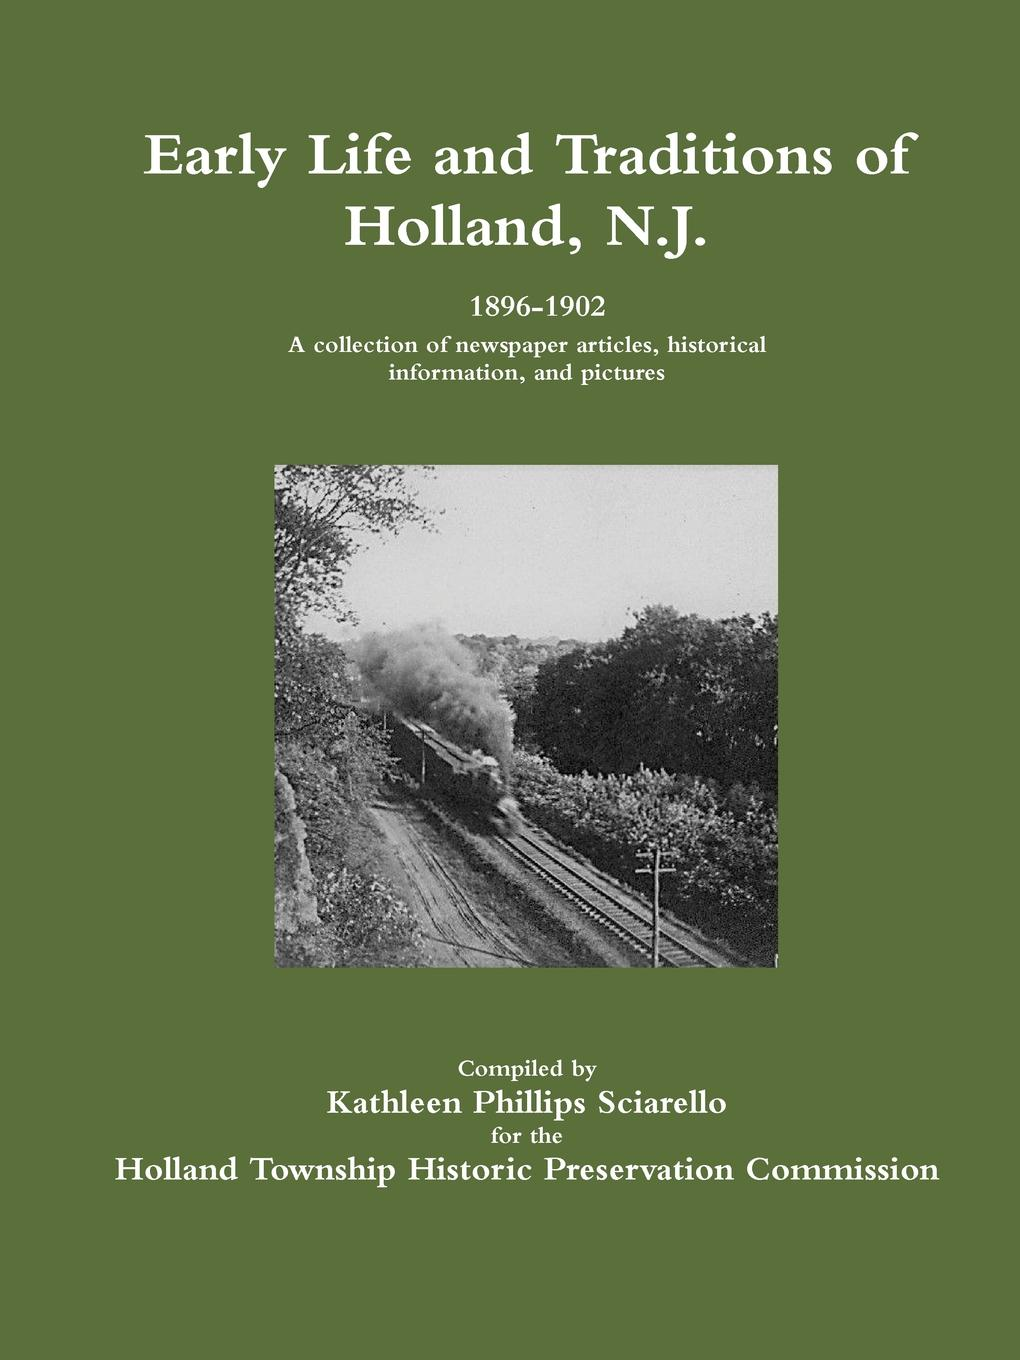 Kathleen Phillips Sciarello Early Life and Traditions of Holland, N.J. 1896-1902